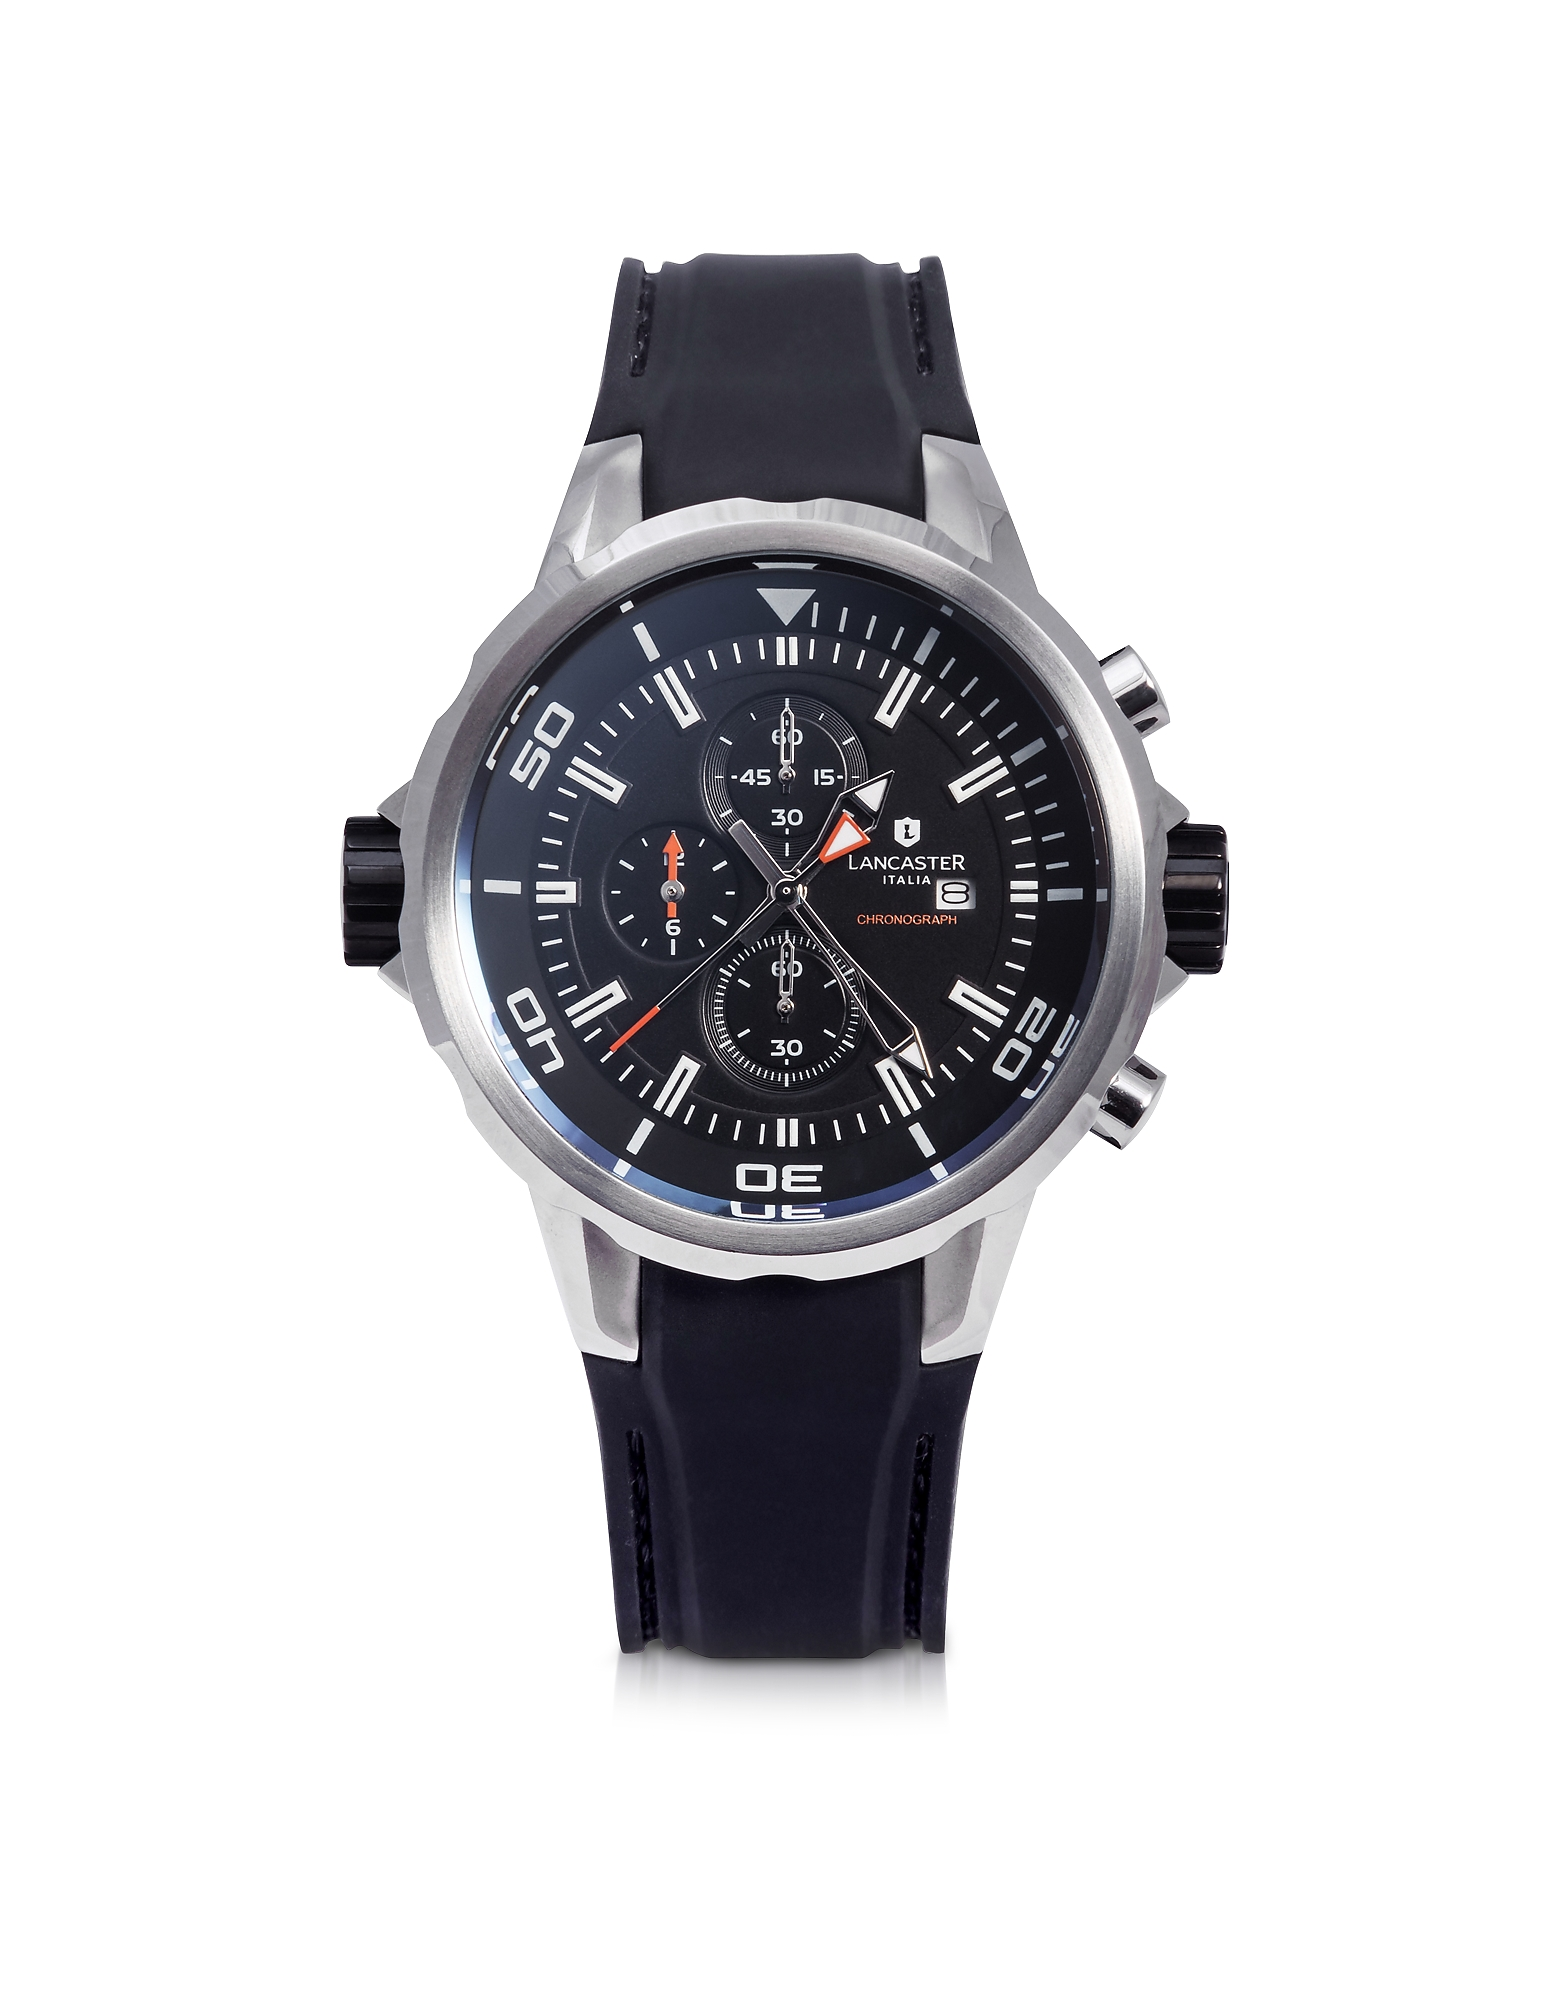 Lancaster Men's Watches, Space Shuttle Stainless Steel and Silicone Chronograph Watch